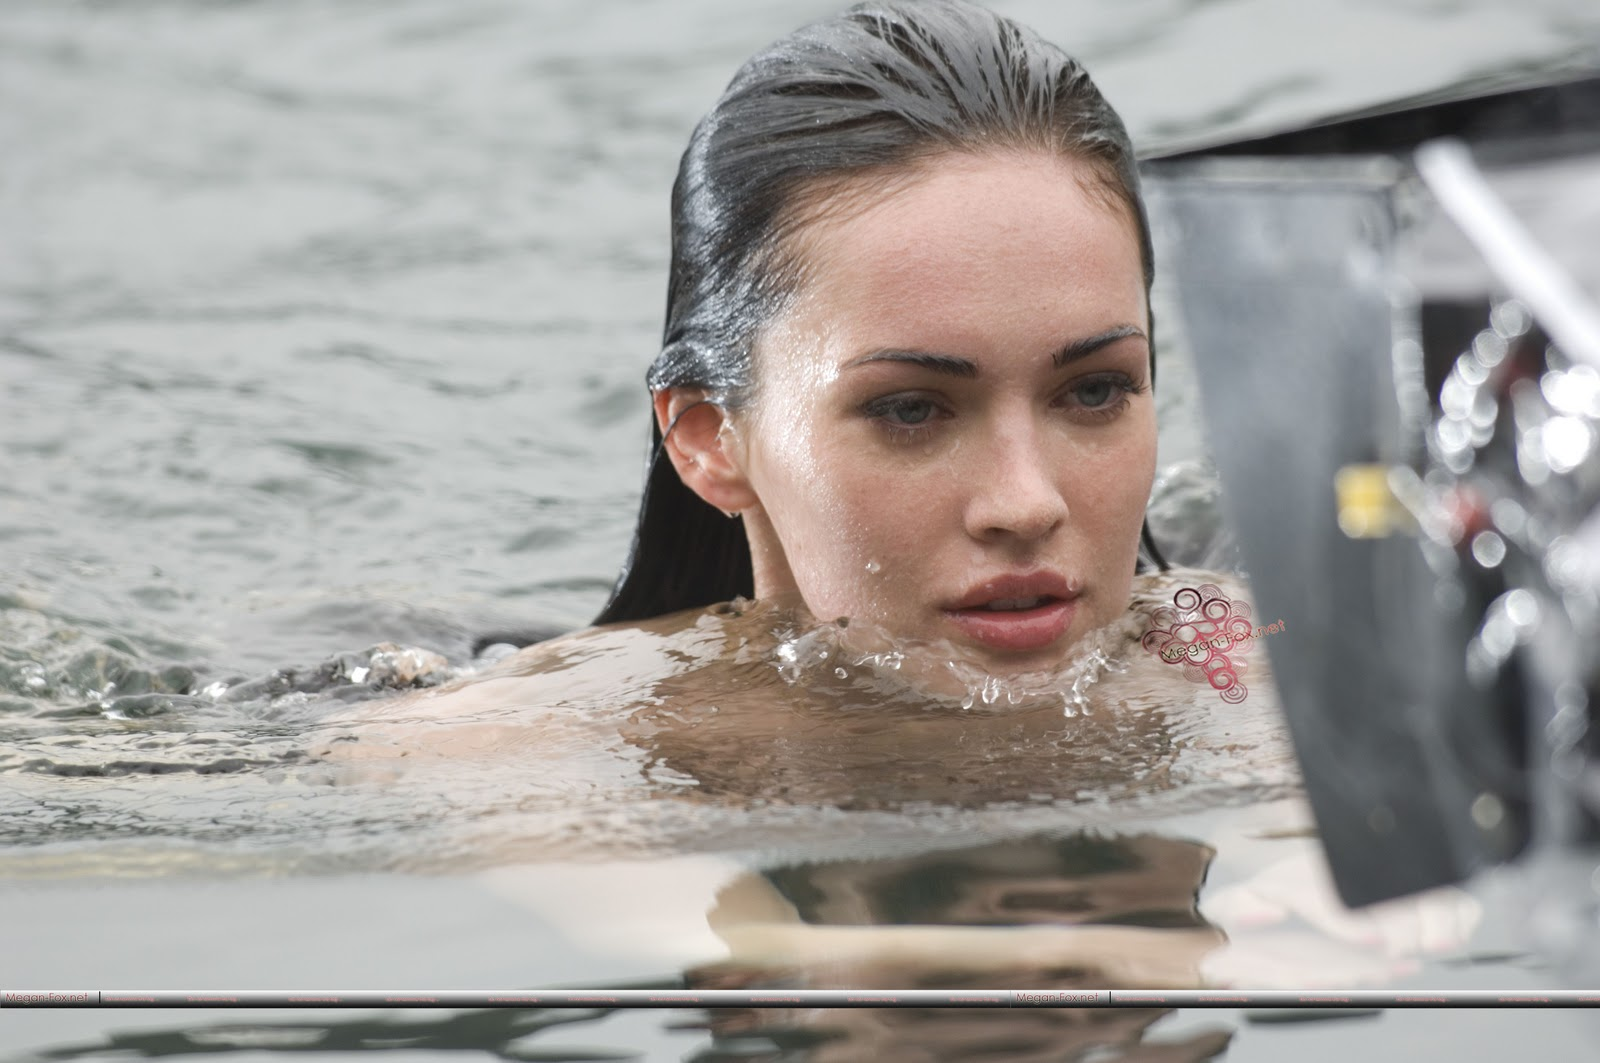 Megan fox on the set of jennifers body in vancouver may naked (17 photos), Paparazzi Celebrites pictures